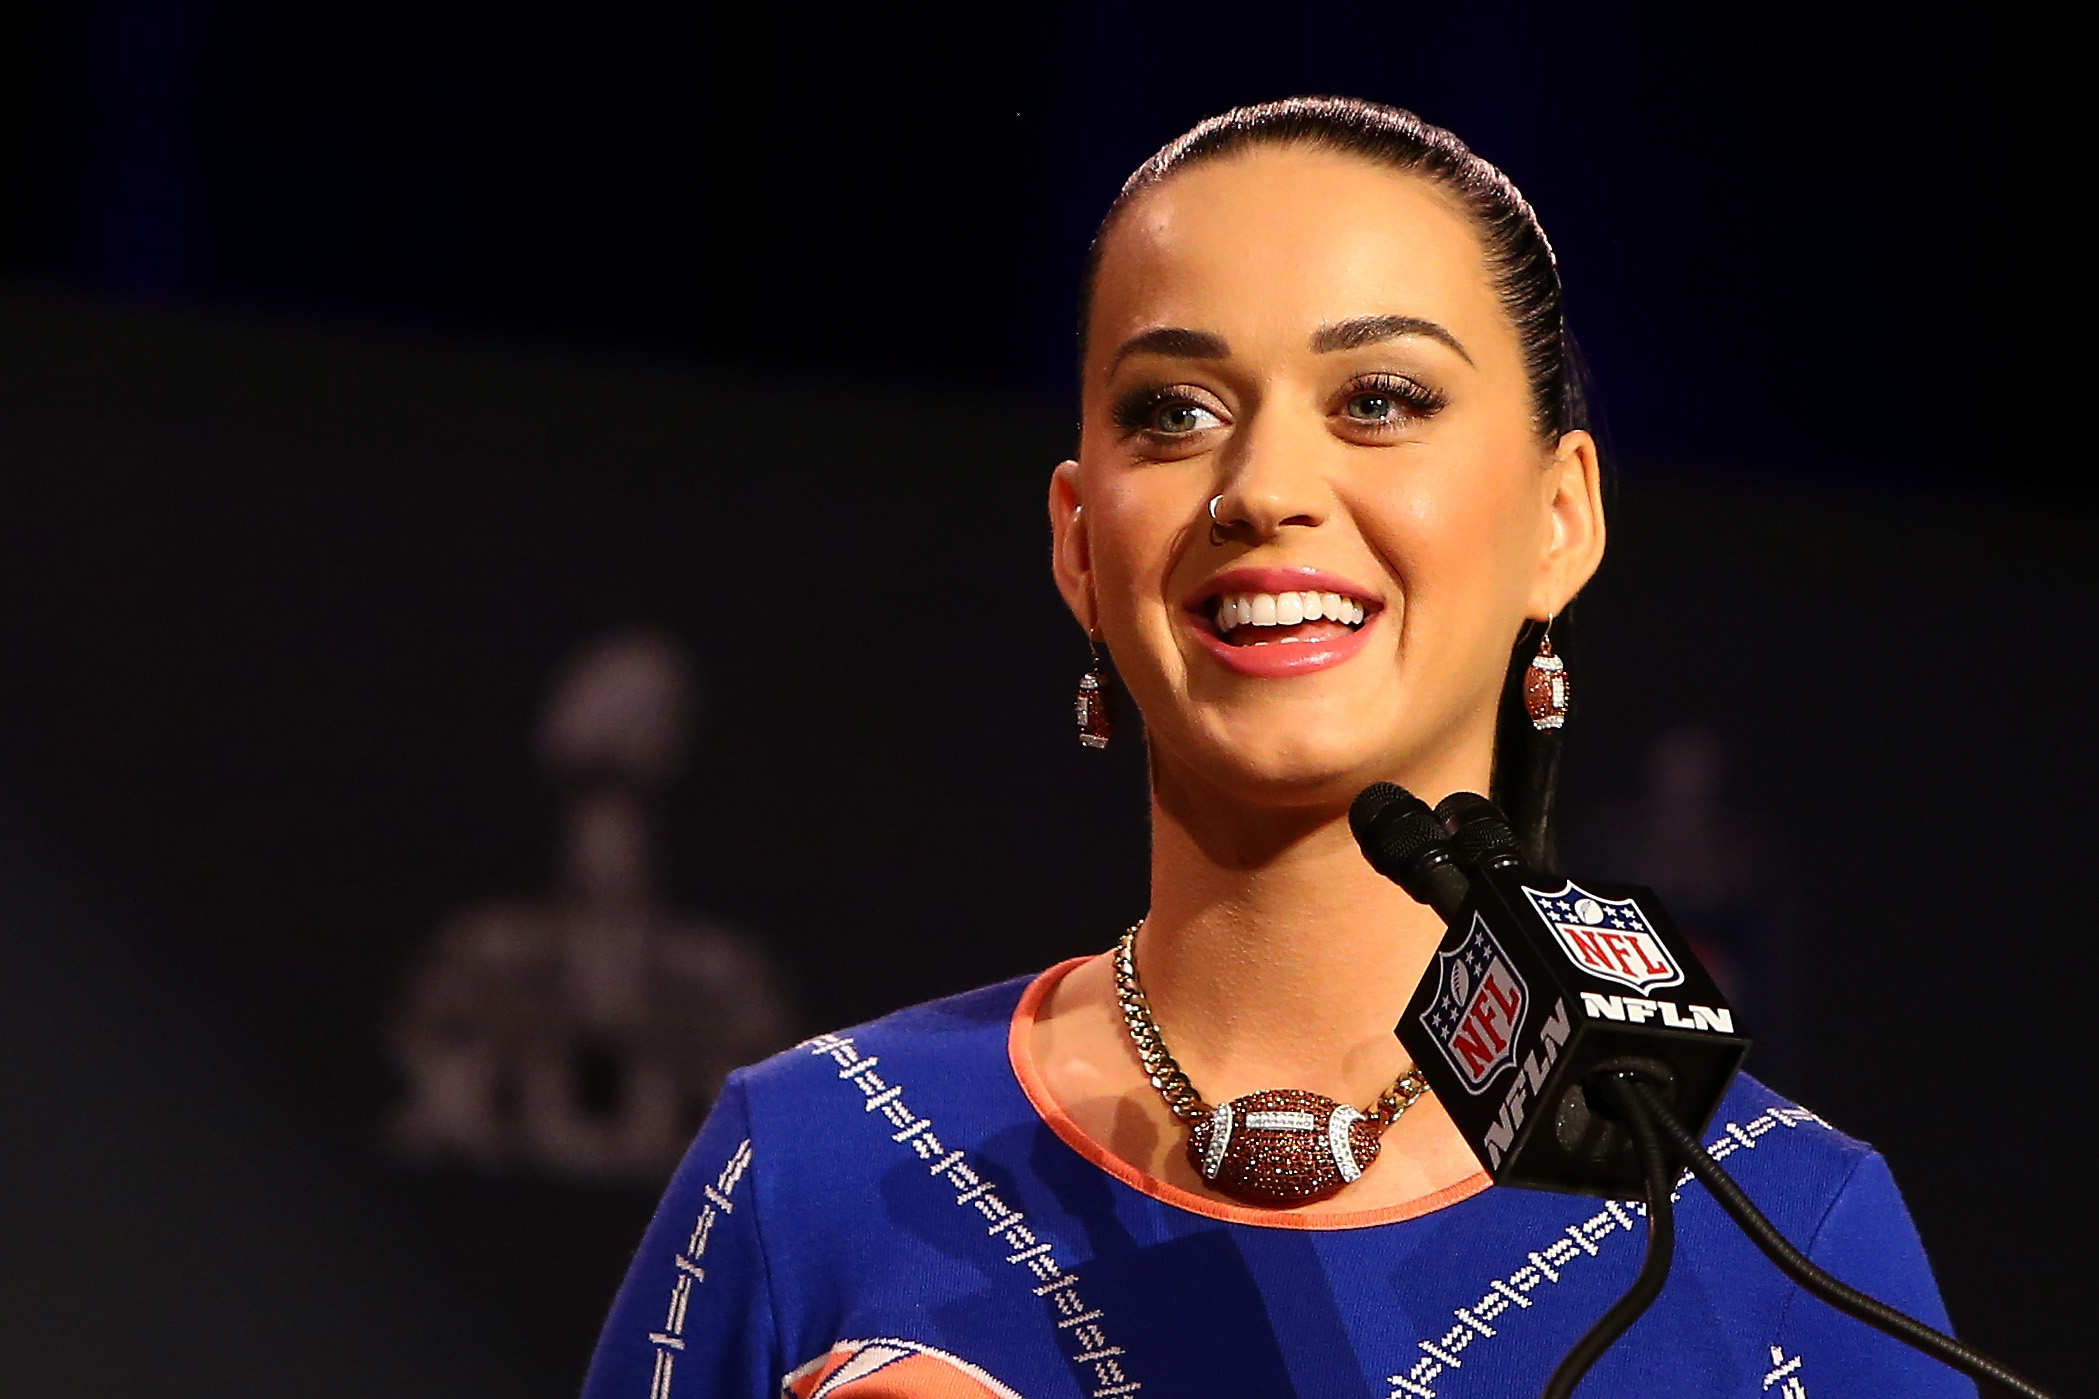 Katy Perry at the Pepsi Super Bowl XLIX Halftime Show Press Conference  in Phoenix on Jan. 29, 2015